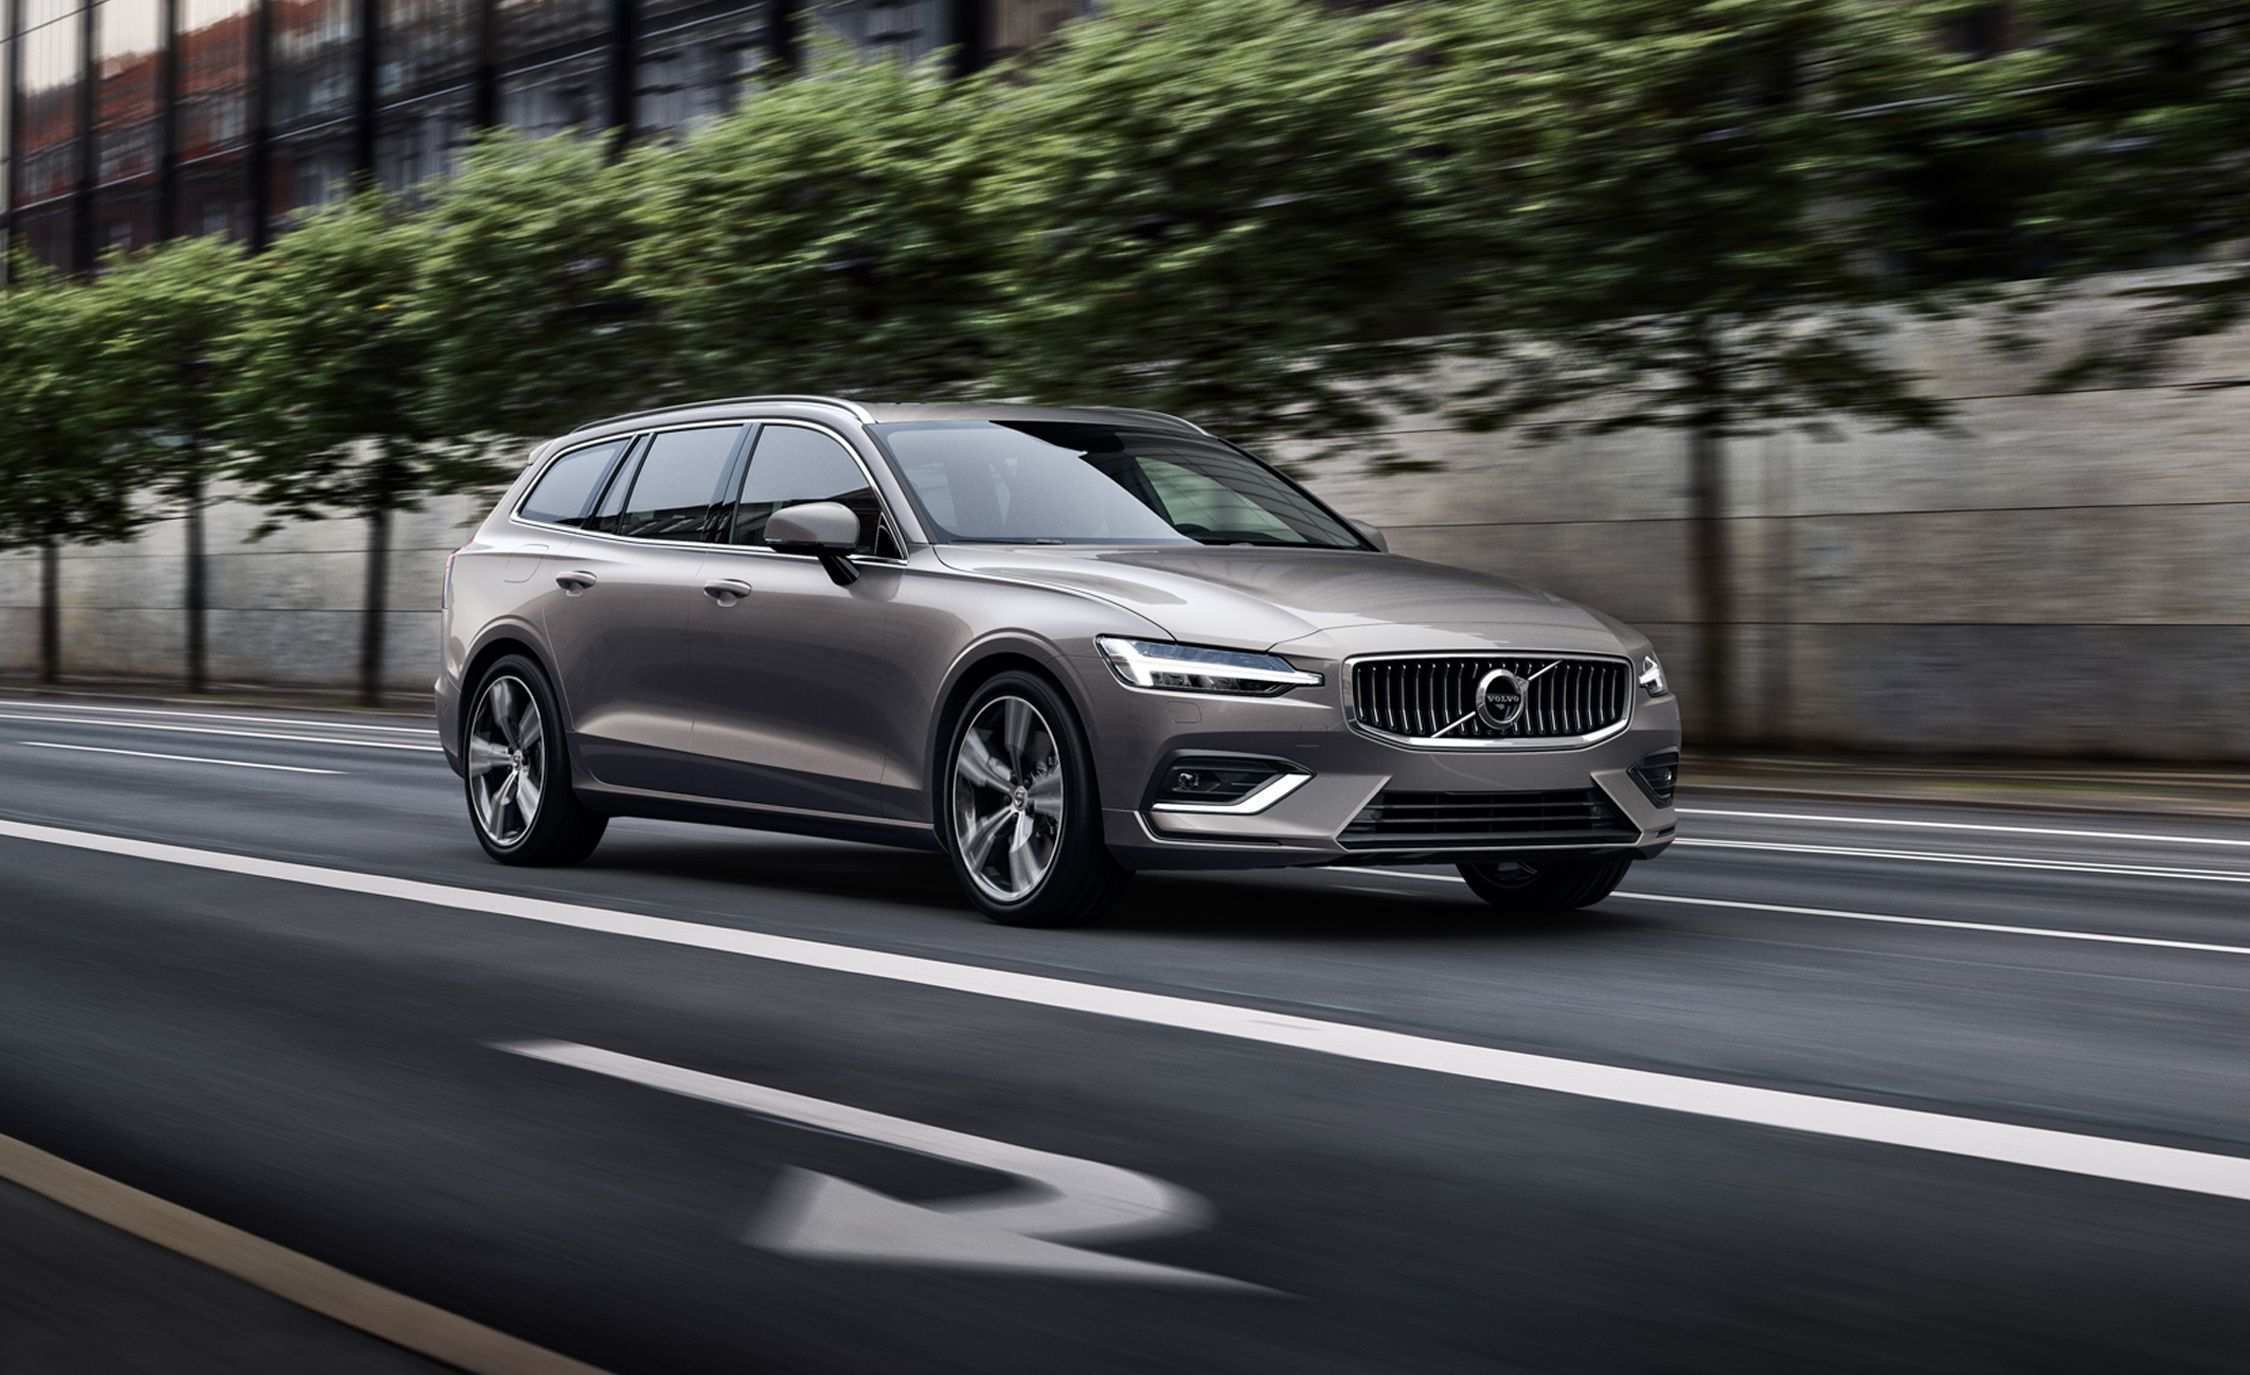 72 Gallery of 2019 Volvo Wagon Specs and Review for 2019 Volvo Wagon